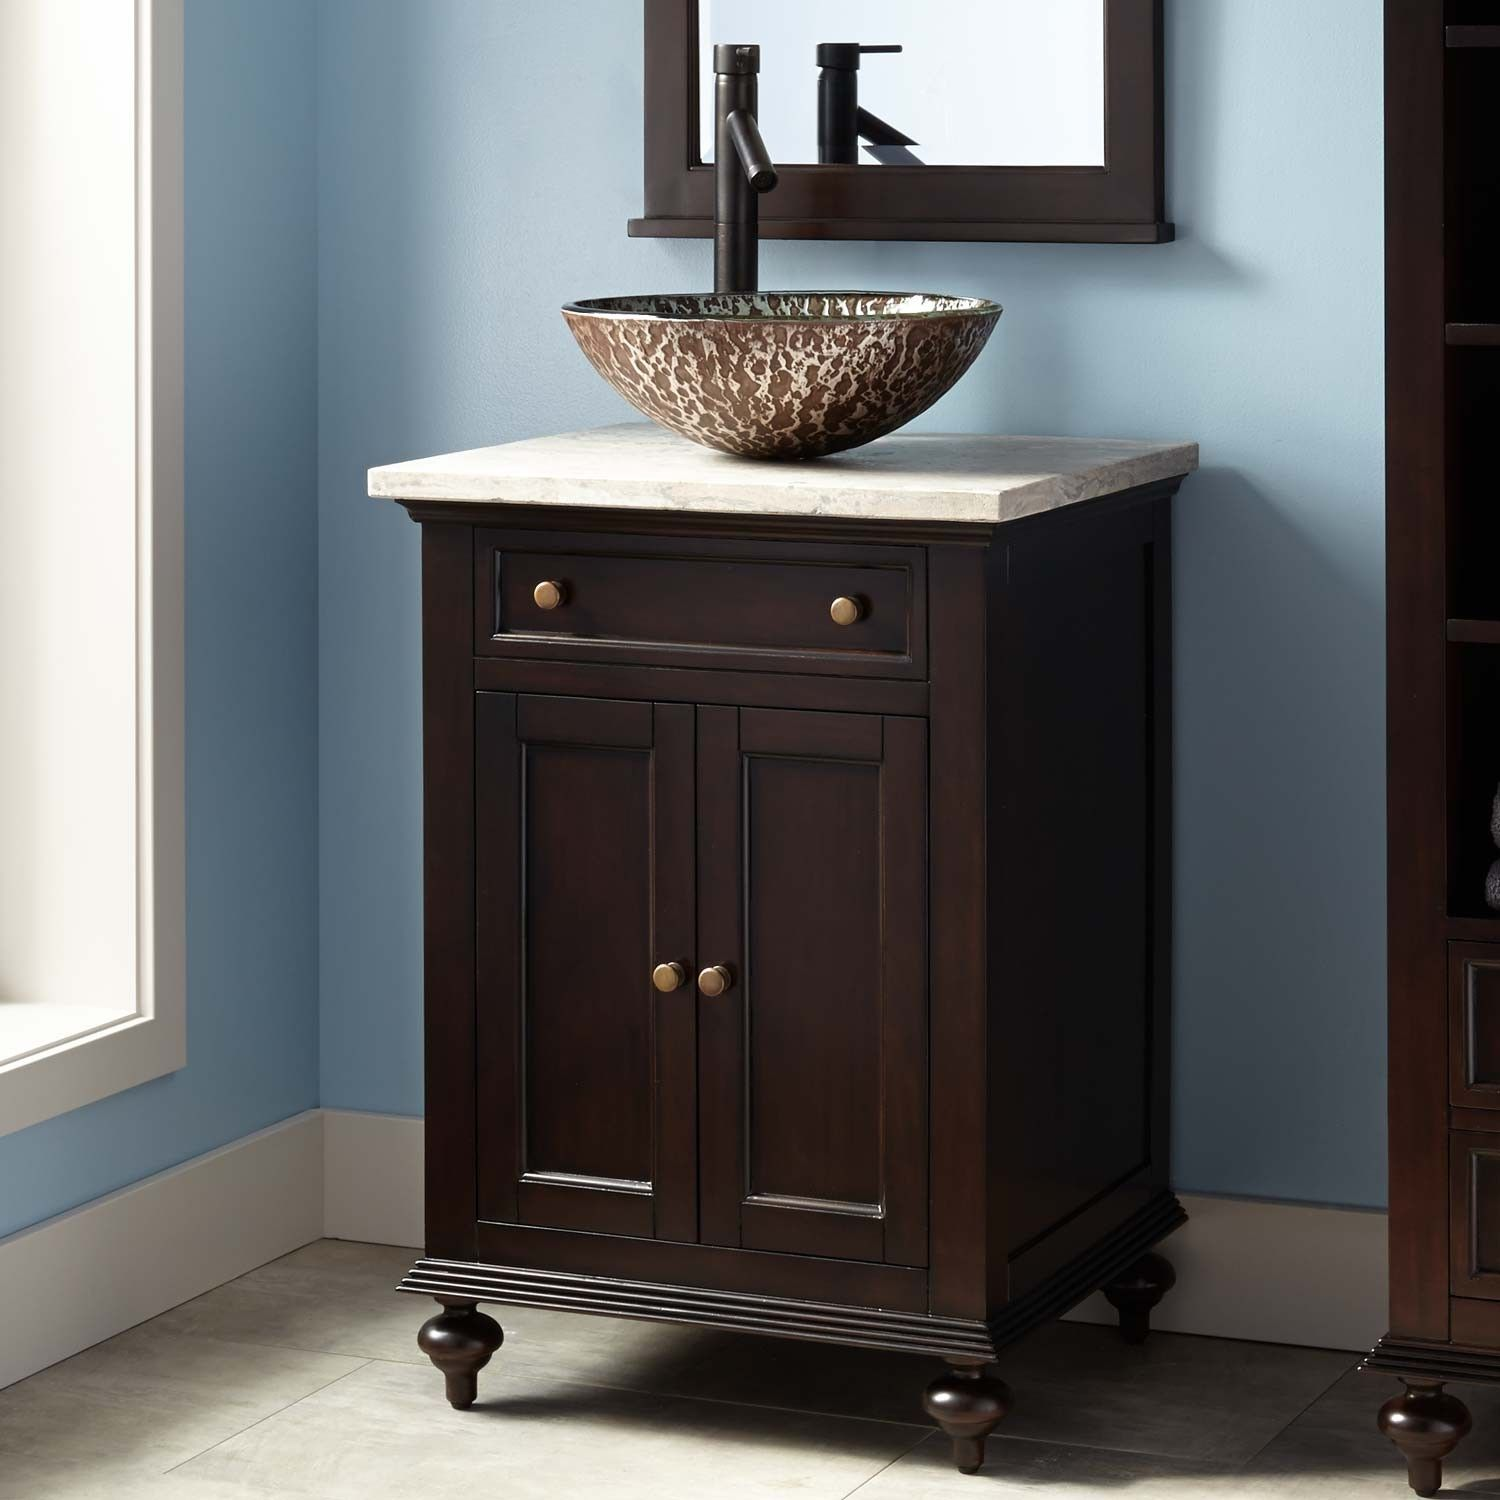 24 Keller Mahogany Vessel Sink Vanity Dark Espresso In 2019 For